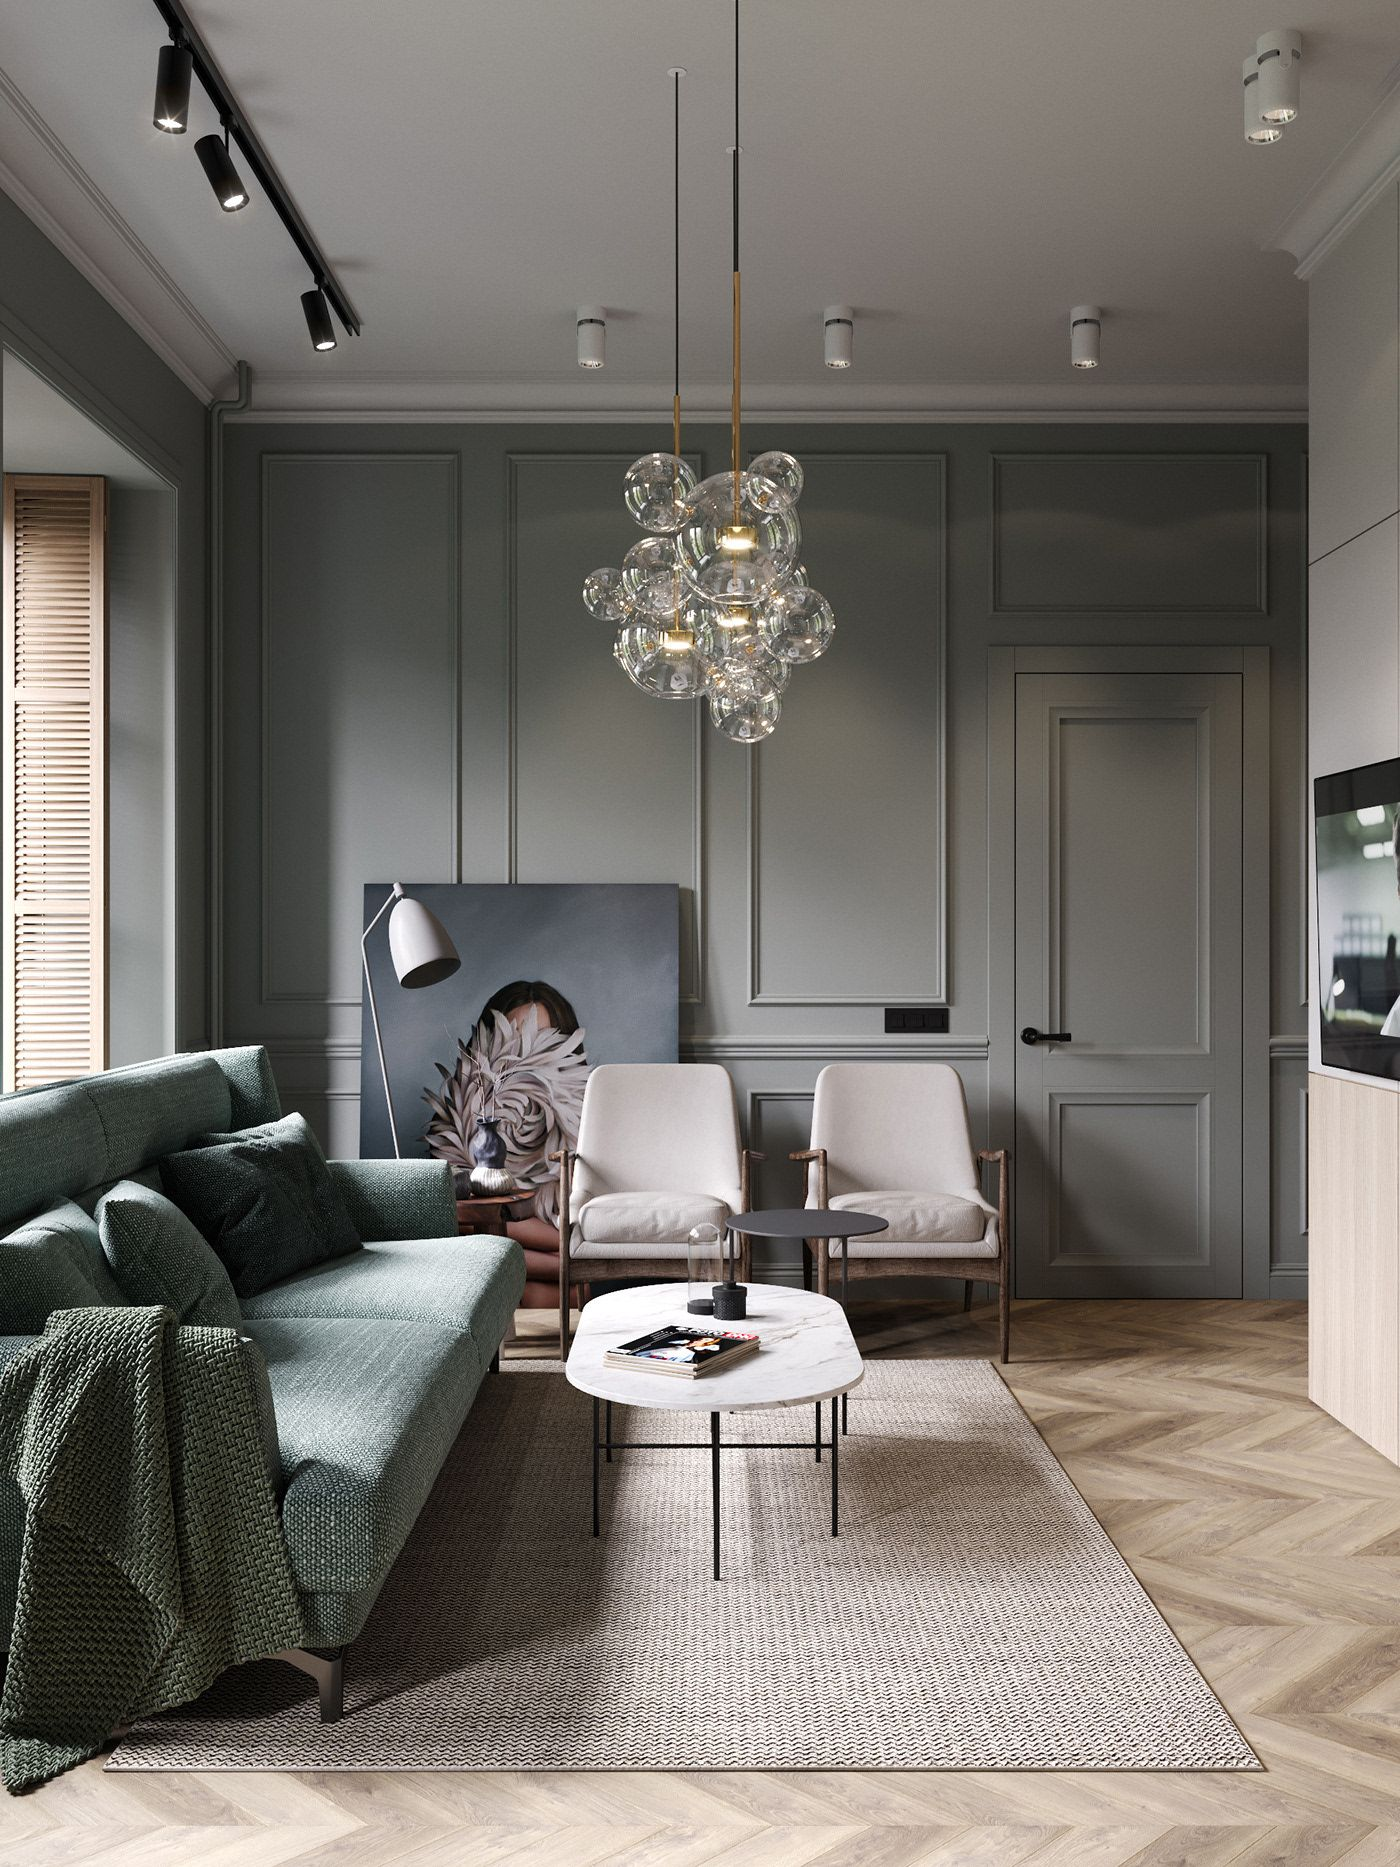 65 Great Modern Interior Design Ideas To Make Your Living Room Look Beautiful Hoomdesign 6: Apartment Interior, Interior Design Living Room, Apartment Chic